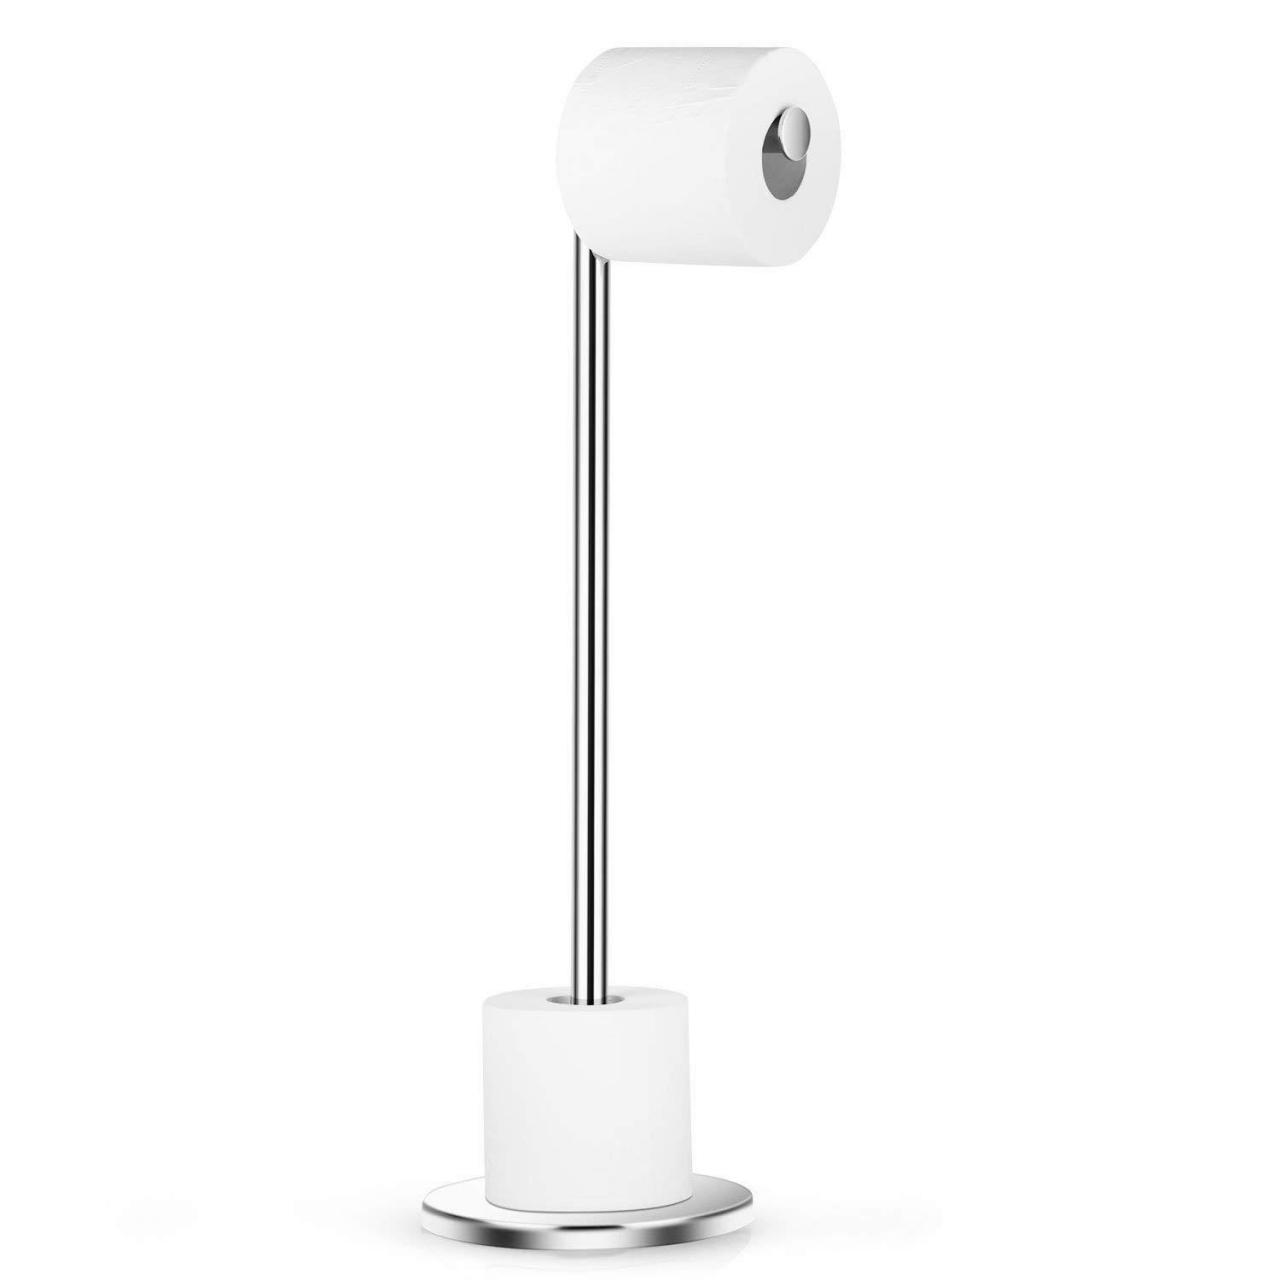 Quality Dailyart Stainless Steel Toilet Paper Holder Free Standing with Reserve Tissu06 for sale